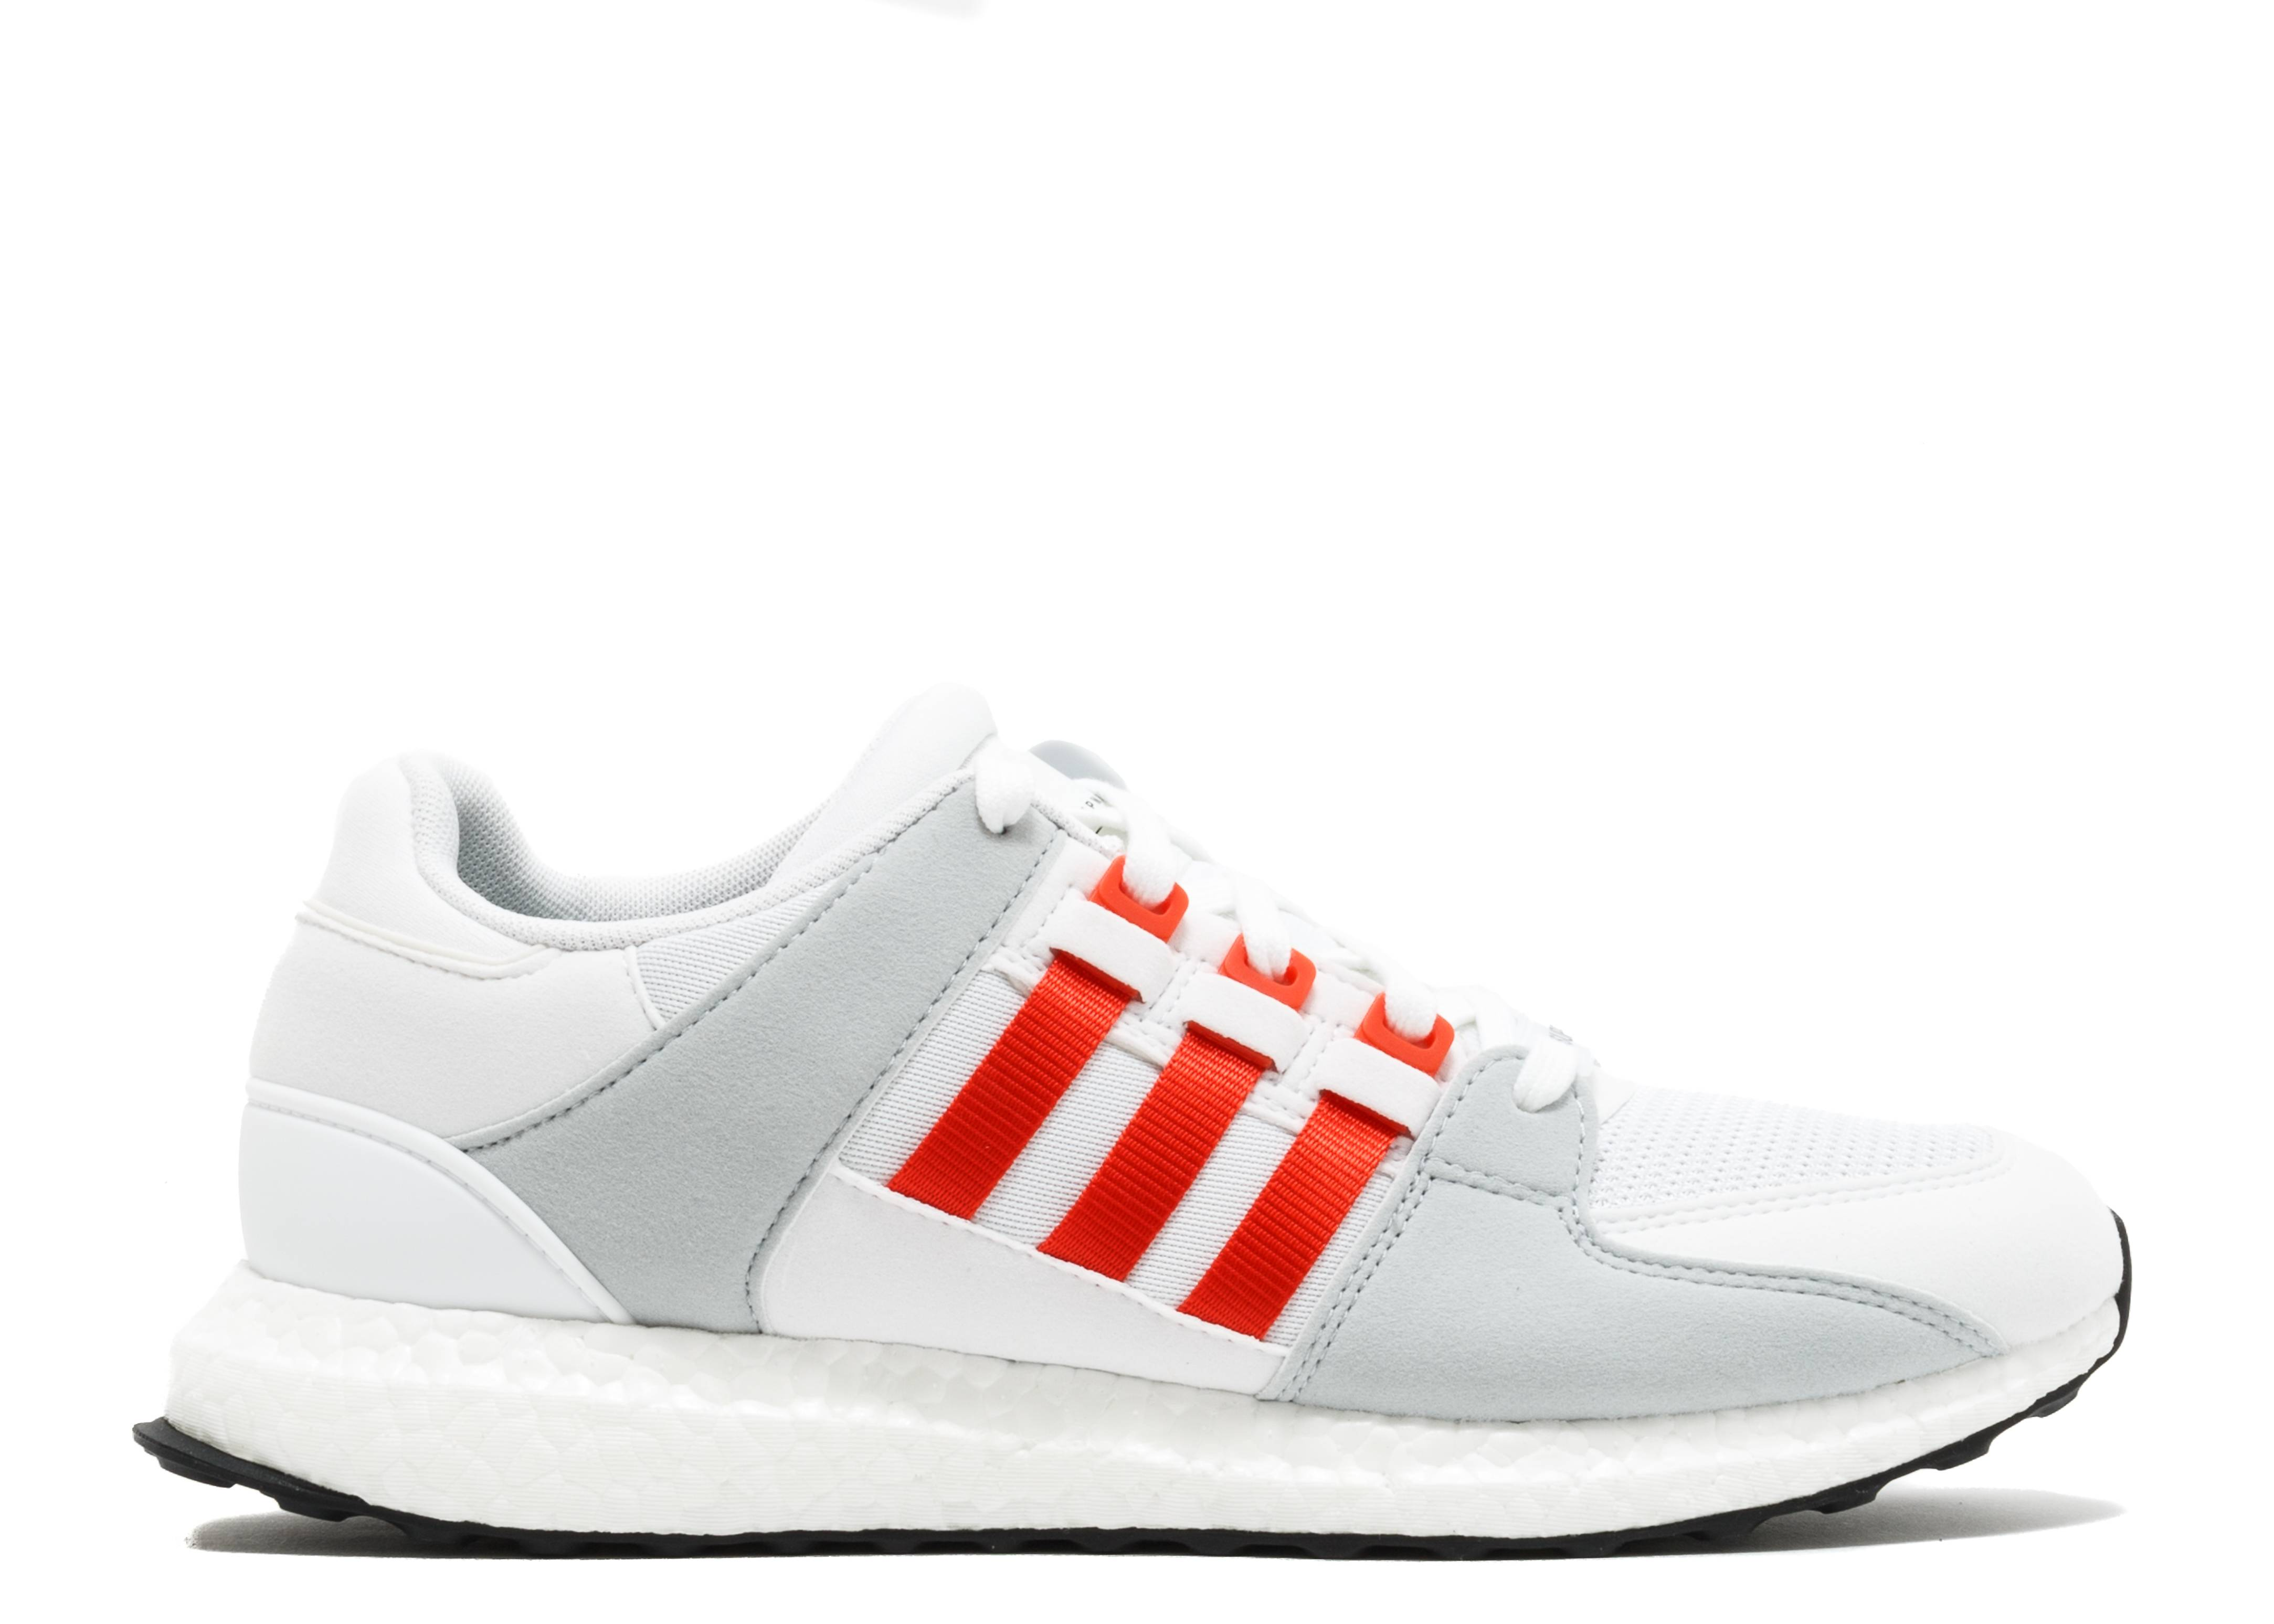 huge selection of bd3d2 3af56 Eqt Support Ultra - Adidas - by9532 - white bold orange clear grey   Flight  Club